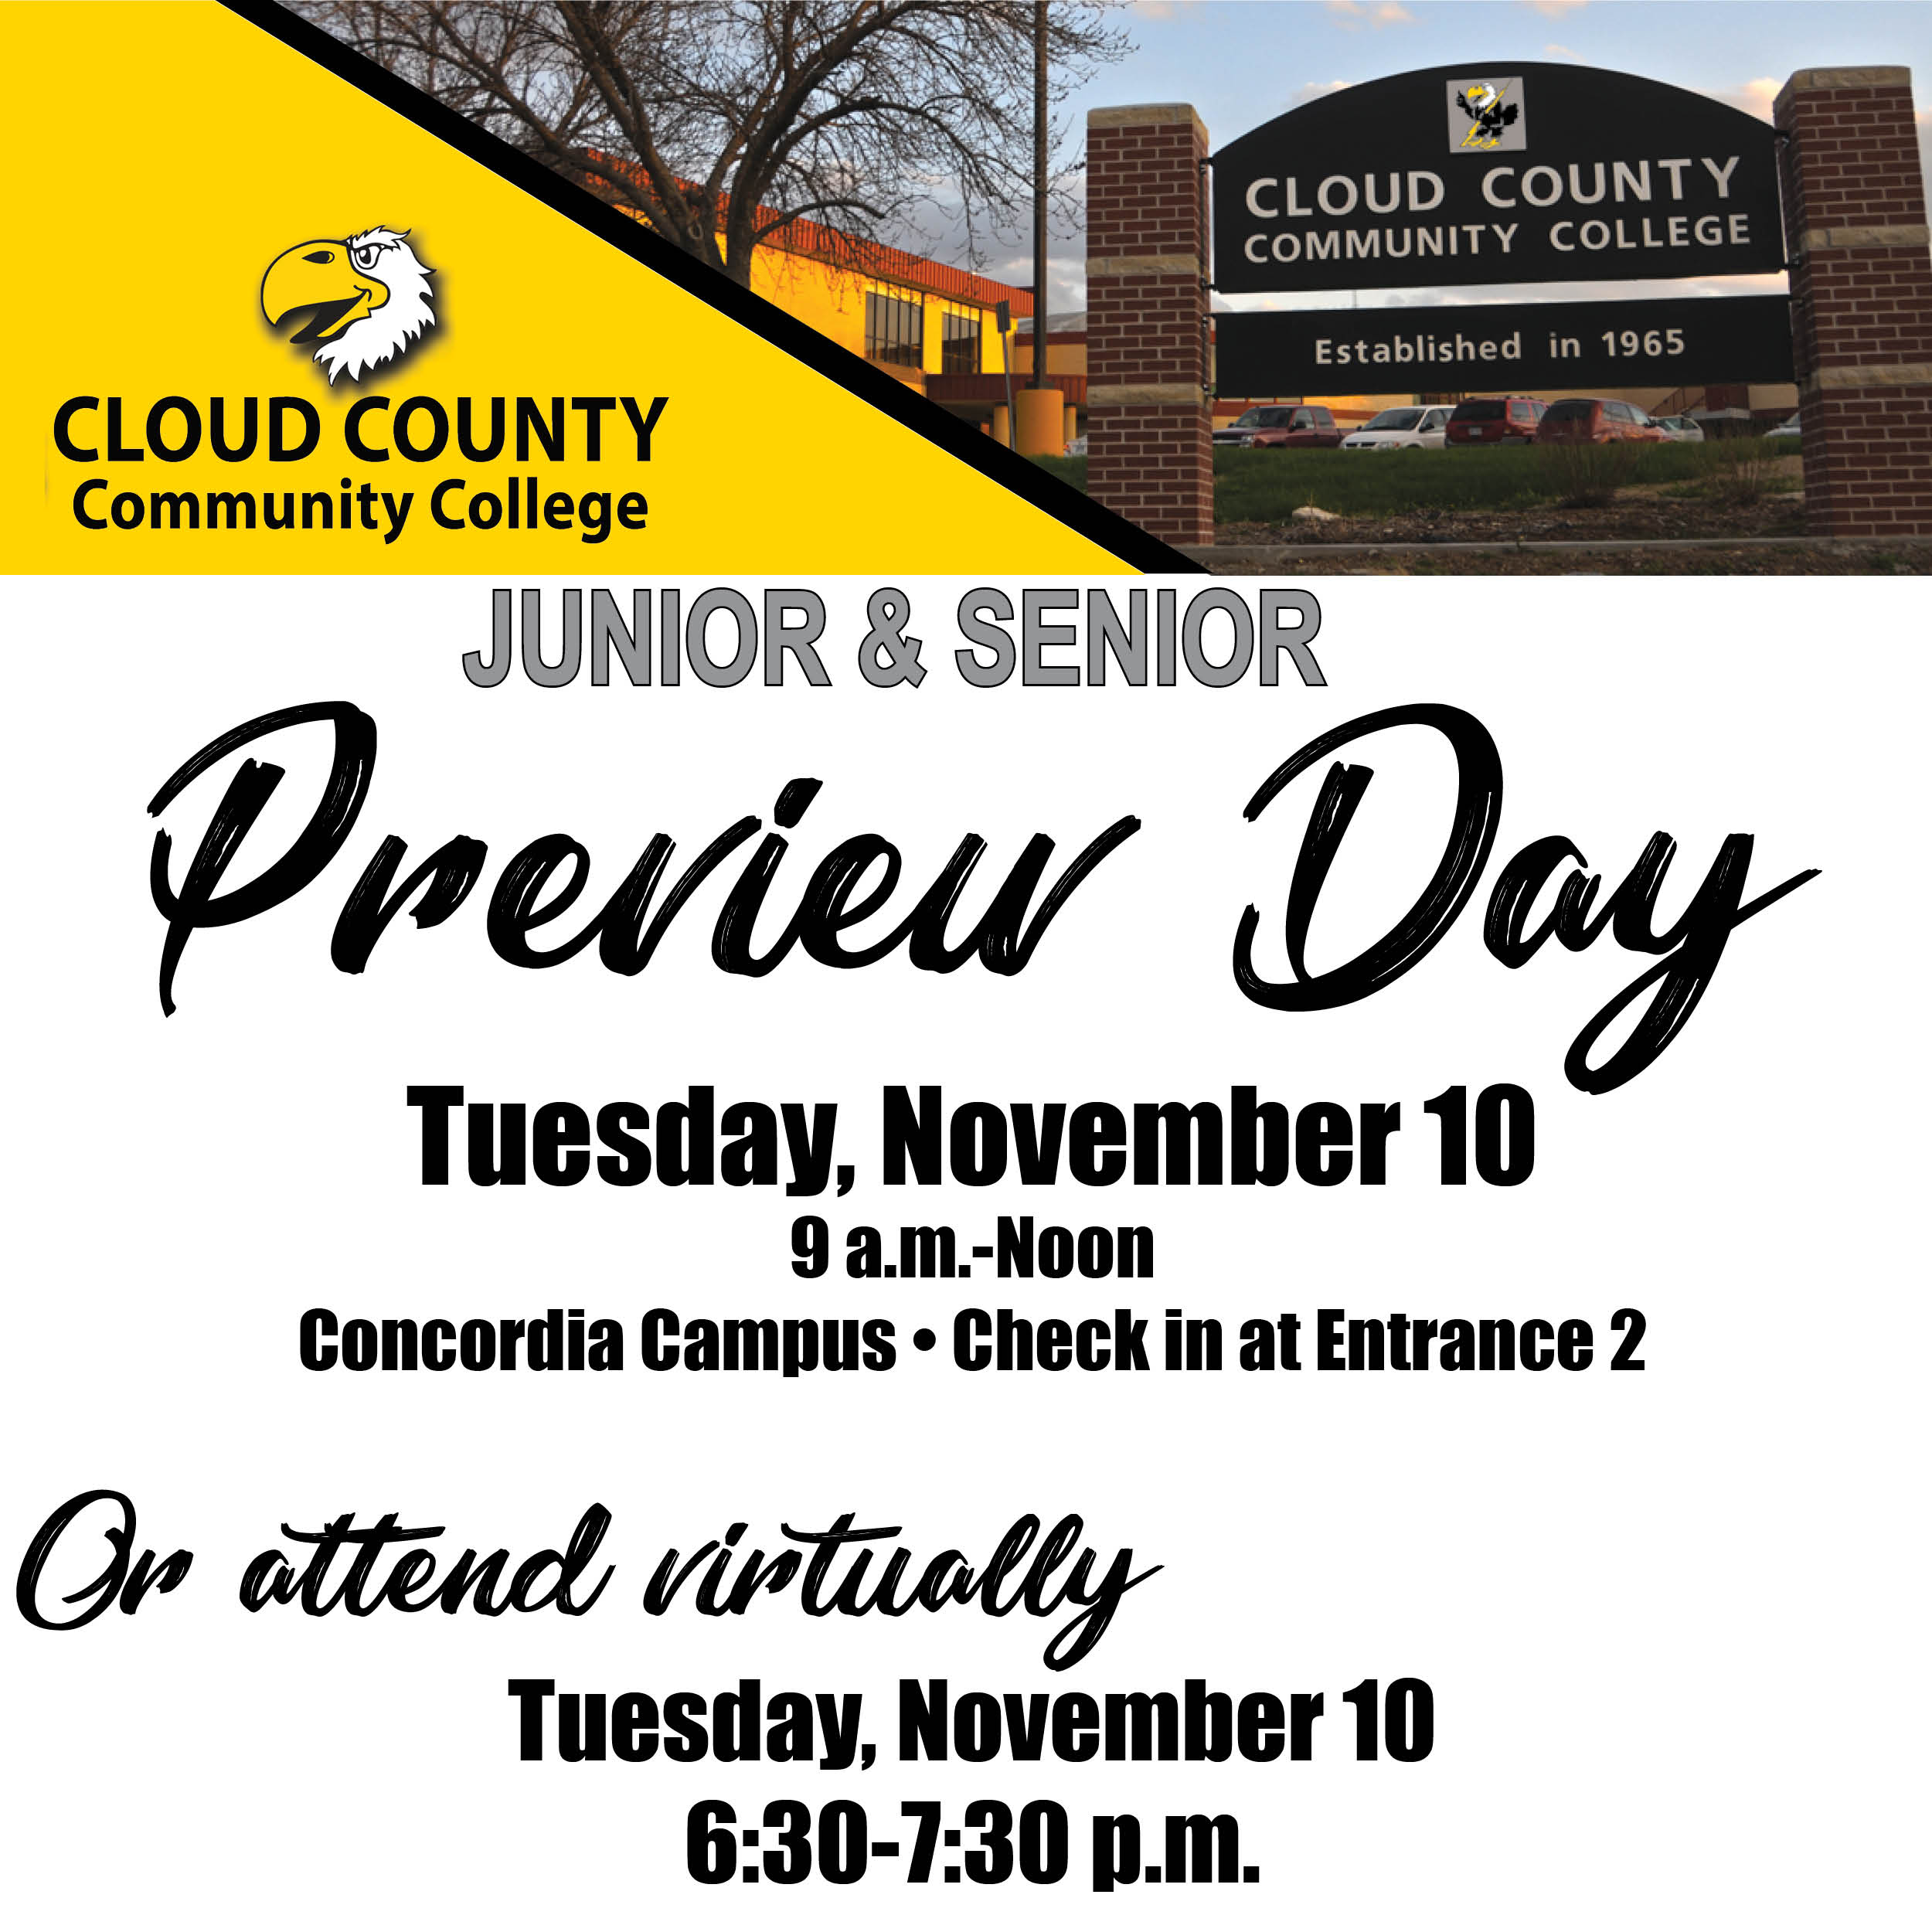 A photo of the Junior-Senior Preview Day information.